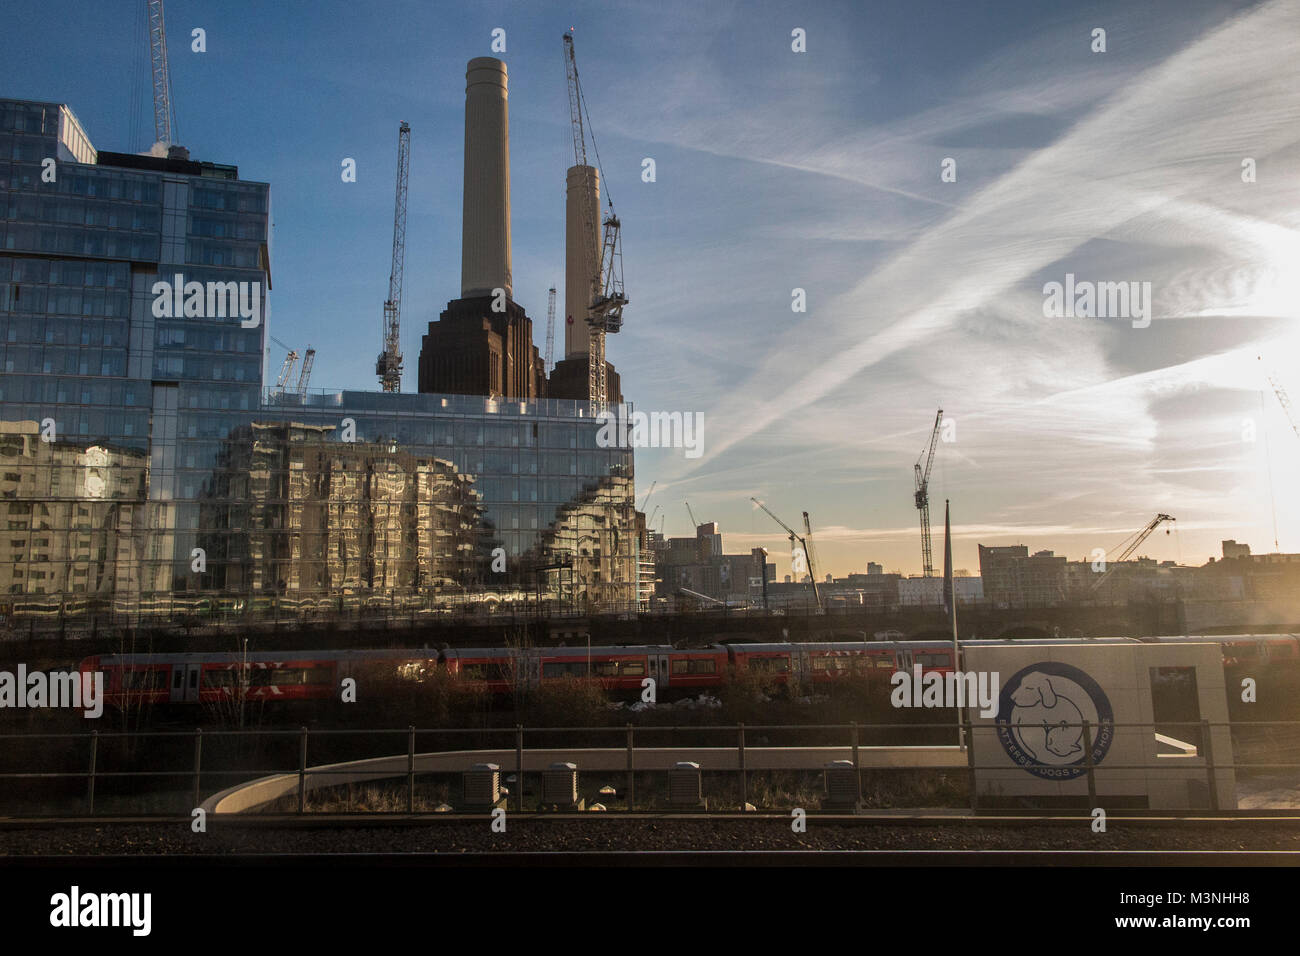 Early morning Battersea Power Station - Stock Image